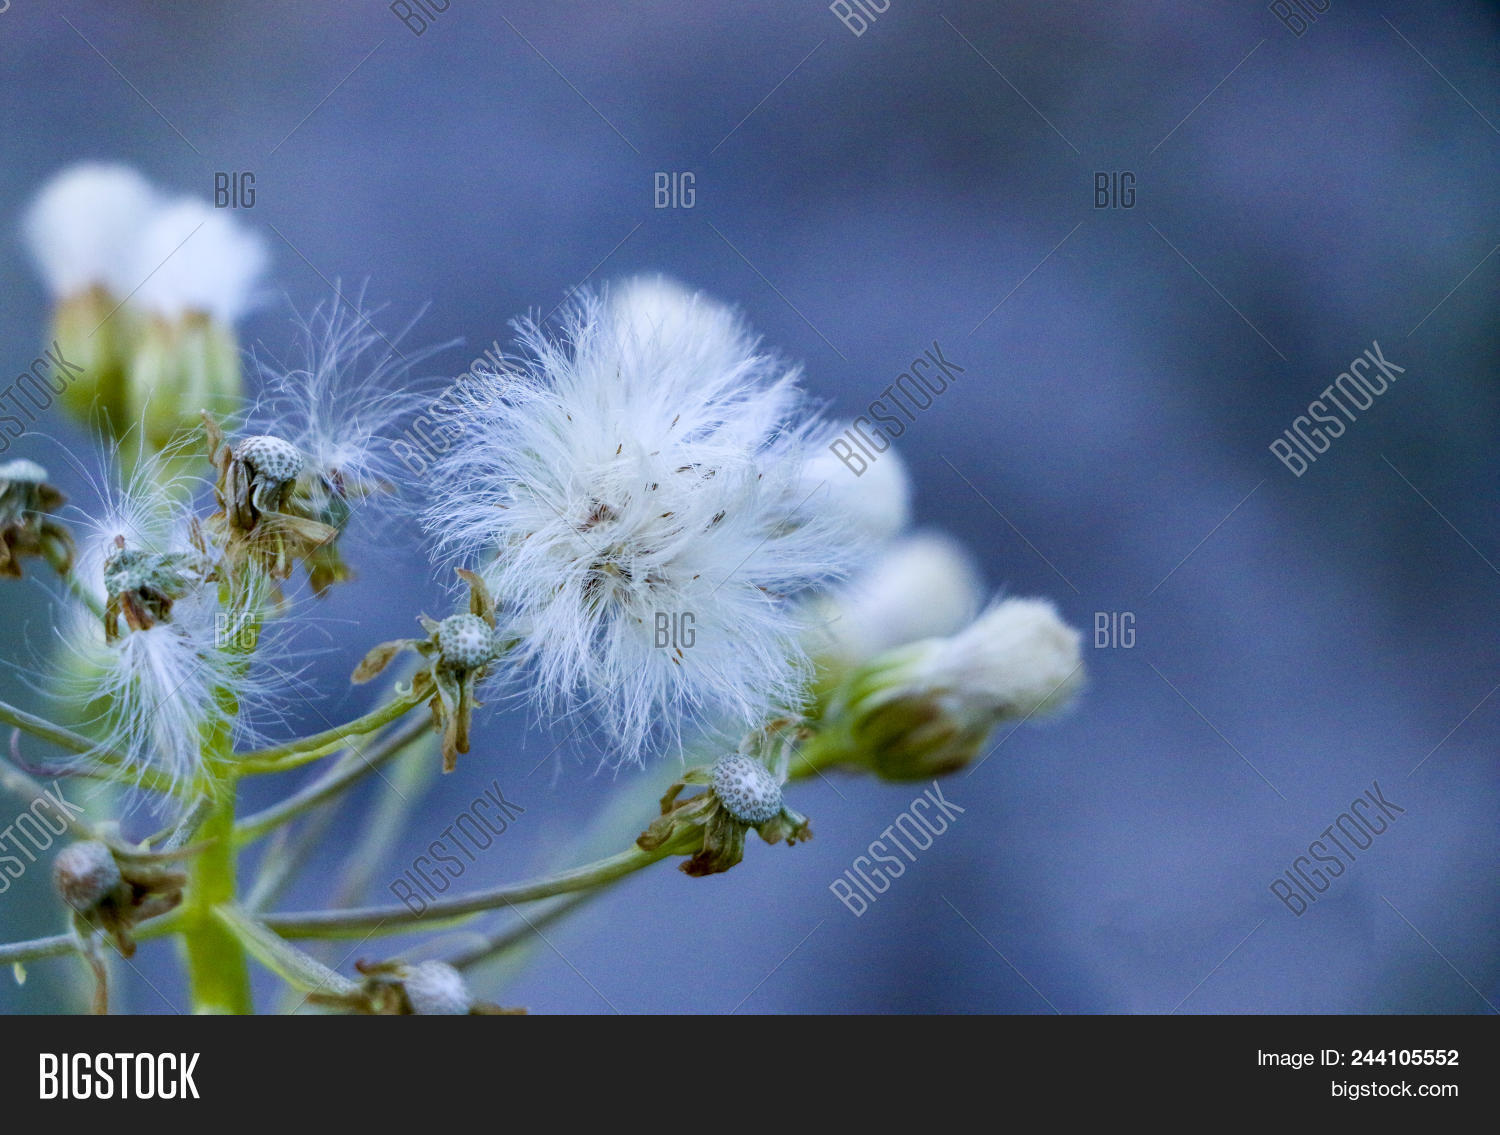 White thistle field image photo free trial bigstock white thistle in the field the dried thistle flowers in the sunlight white fluffy mightylinksfo